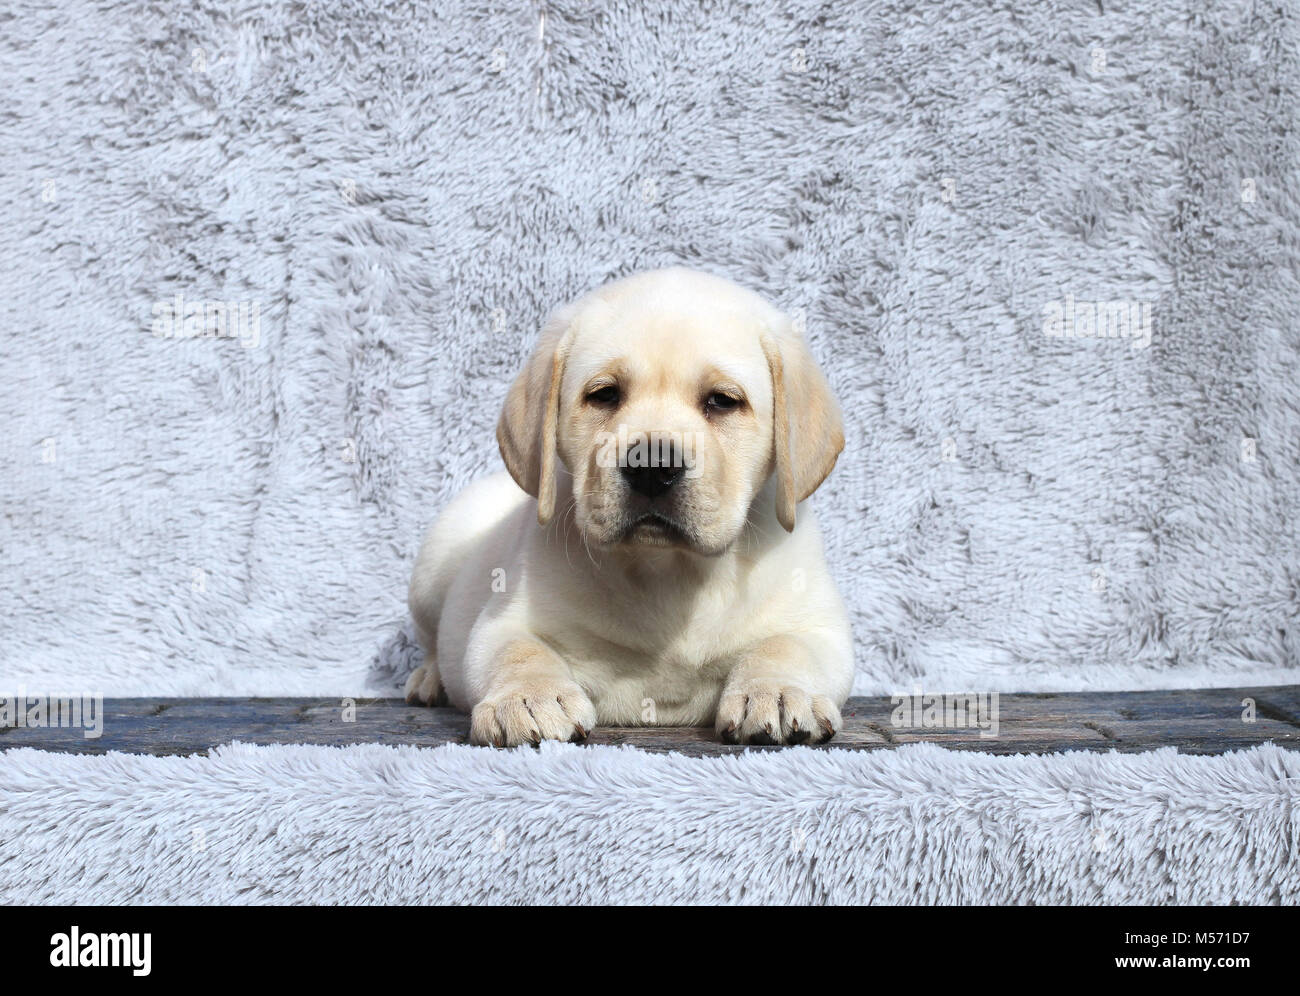 A Little Yellow Labrador Puppy Sitting On Grey Background Stock Photo Alamy